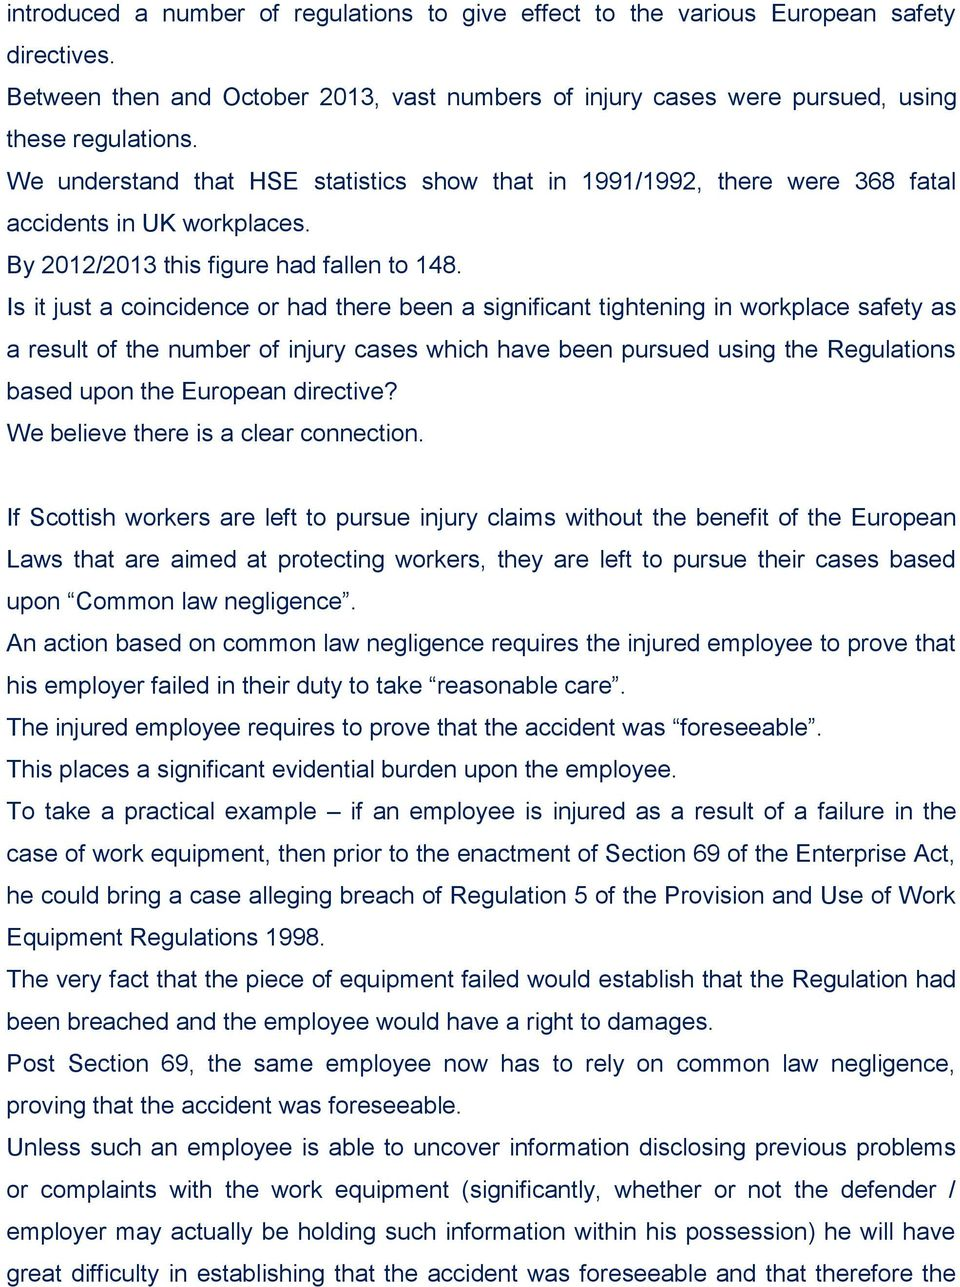 Is it just a coincidence or had there been a significant tightening in workplace safety as a result of the number of injury cases which have been pursued using the Regulations based upon the European